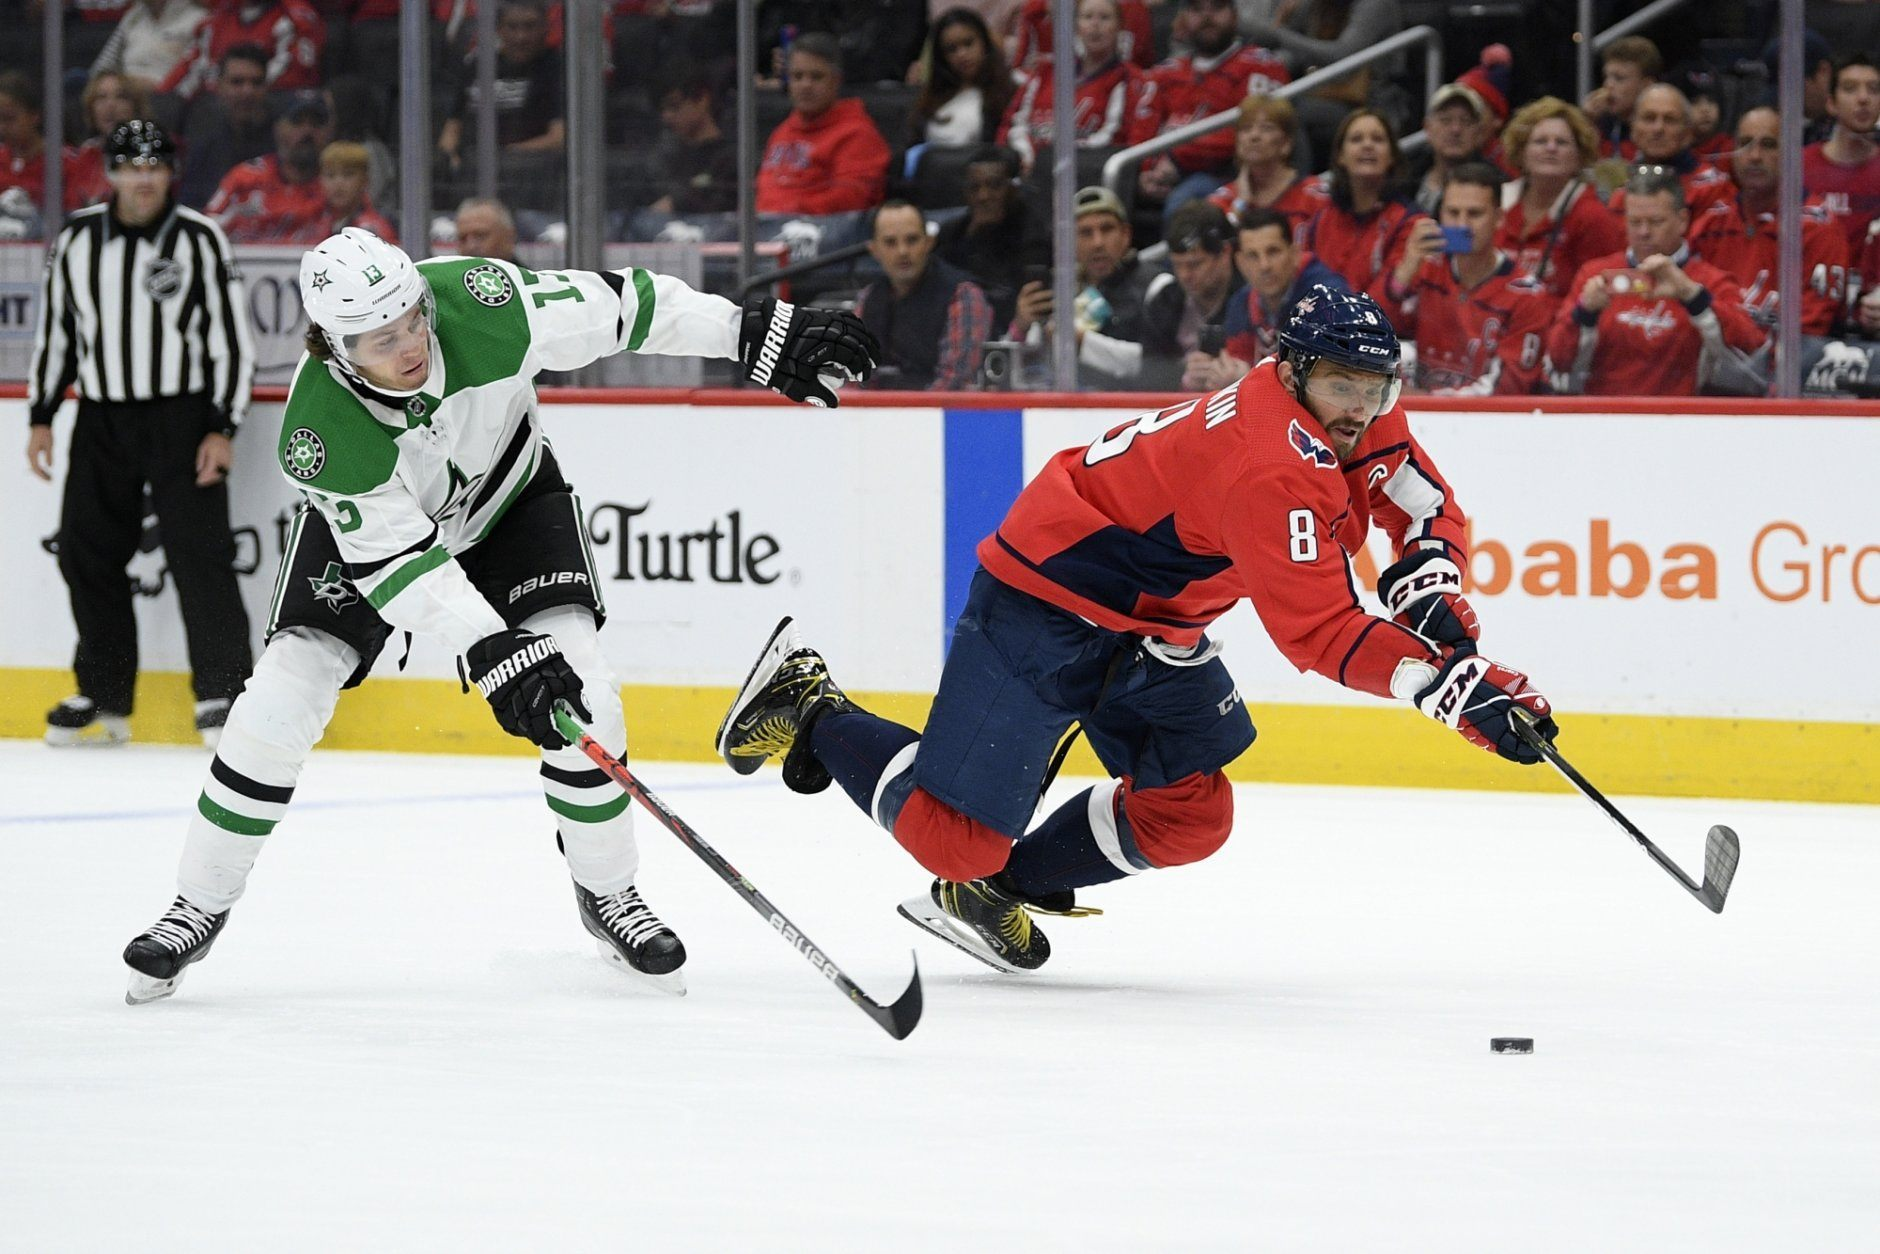 Washington Capitals left wing Alex Ovechkin (8), of Russia, scrambles for the puck in front of Dallas Stars center Mattias Janmark (13), of Sweden, during the first period of an NHL hockey game Tuesday, Oct. 8, 2019, in Washington. The Stars won 4-3 in overtime. (AP Photo/Nick Wass)